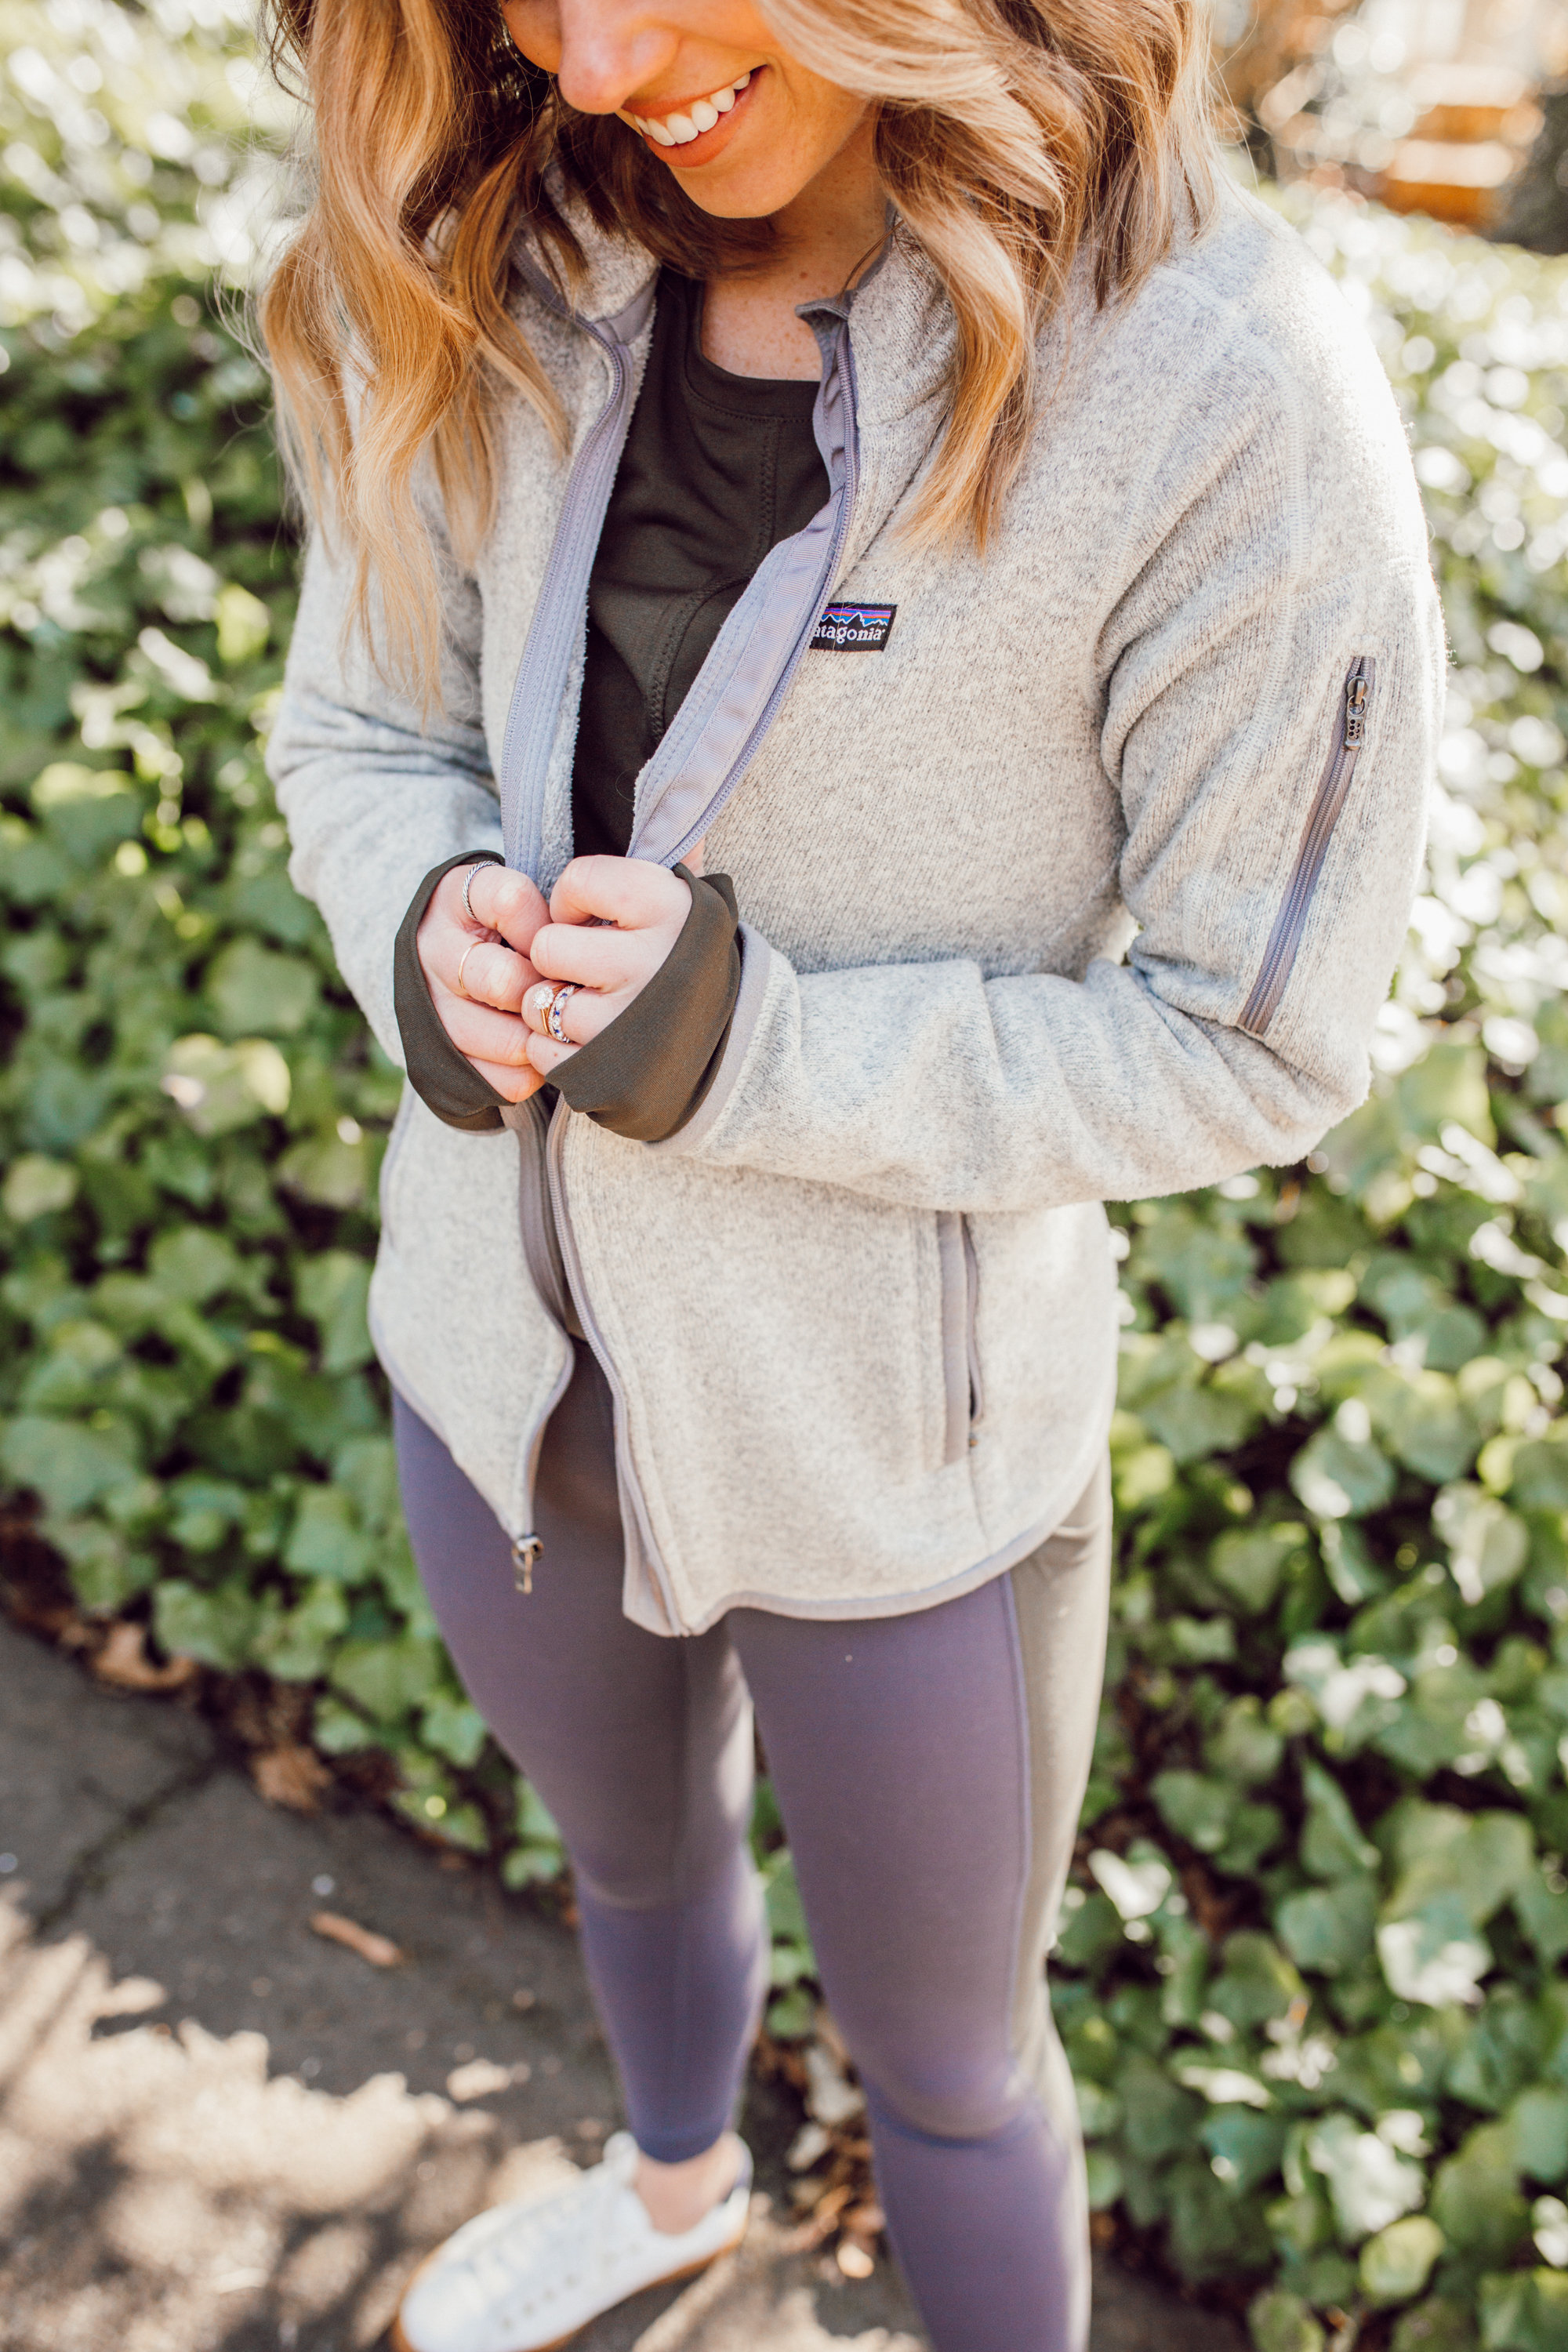 FWTFL vs BBG: How they compare and overall thoughts on the two programs | Winter Workout Wear | Louella Reese